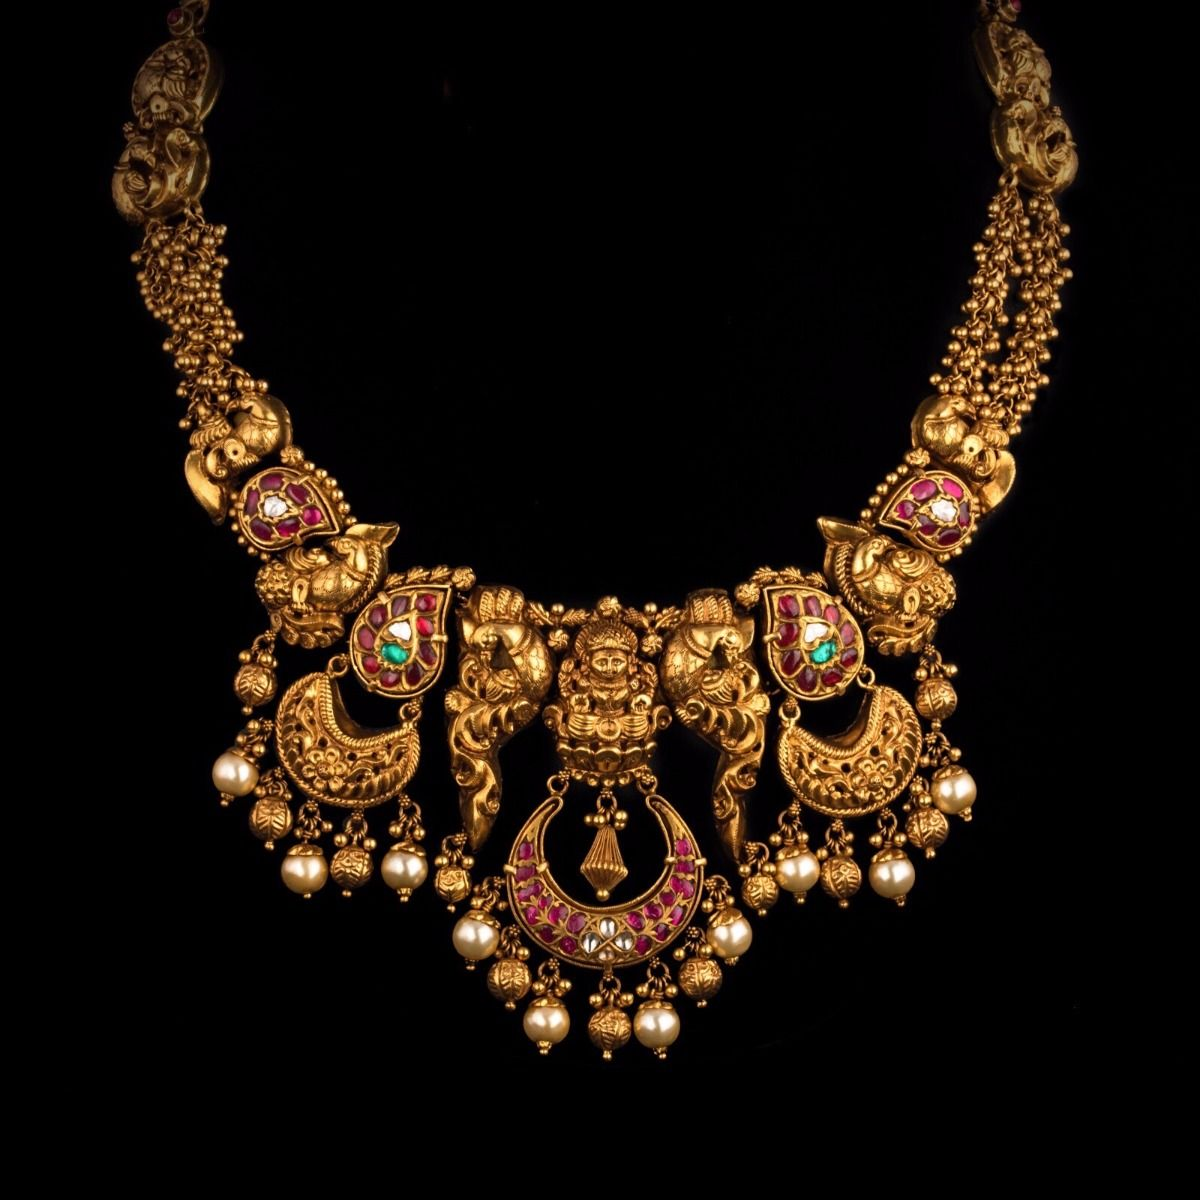 Heritage Heirloom Gold Necklace Designs Gold Pendant Jewelry Silver Necklace Set